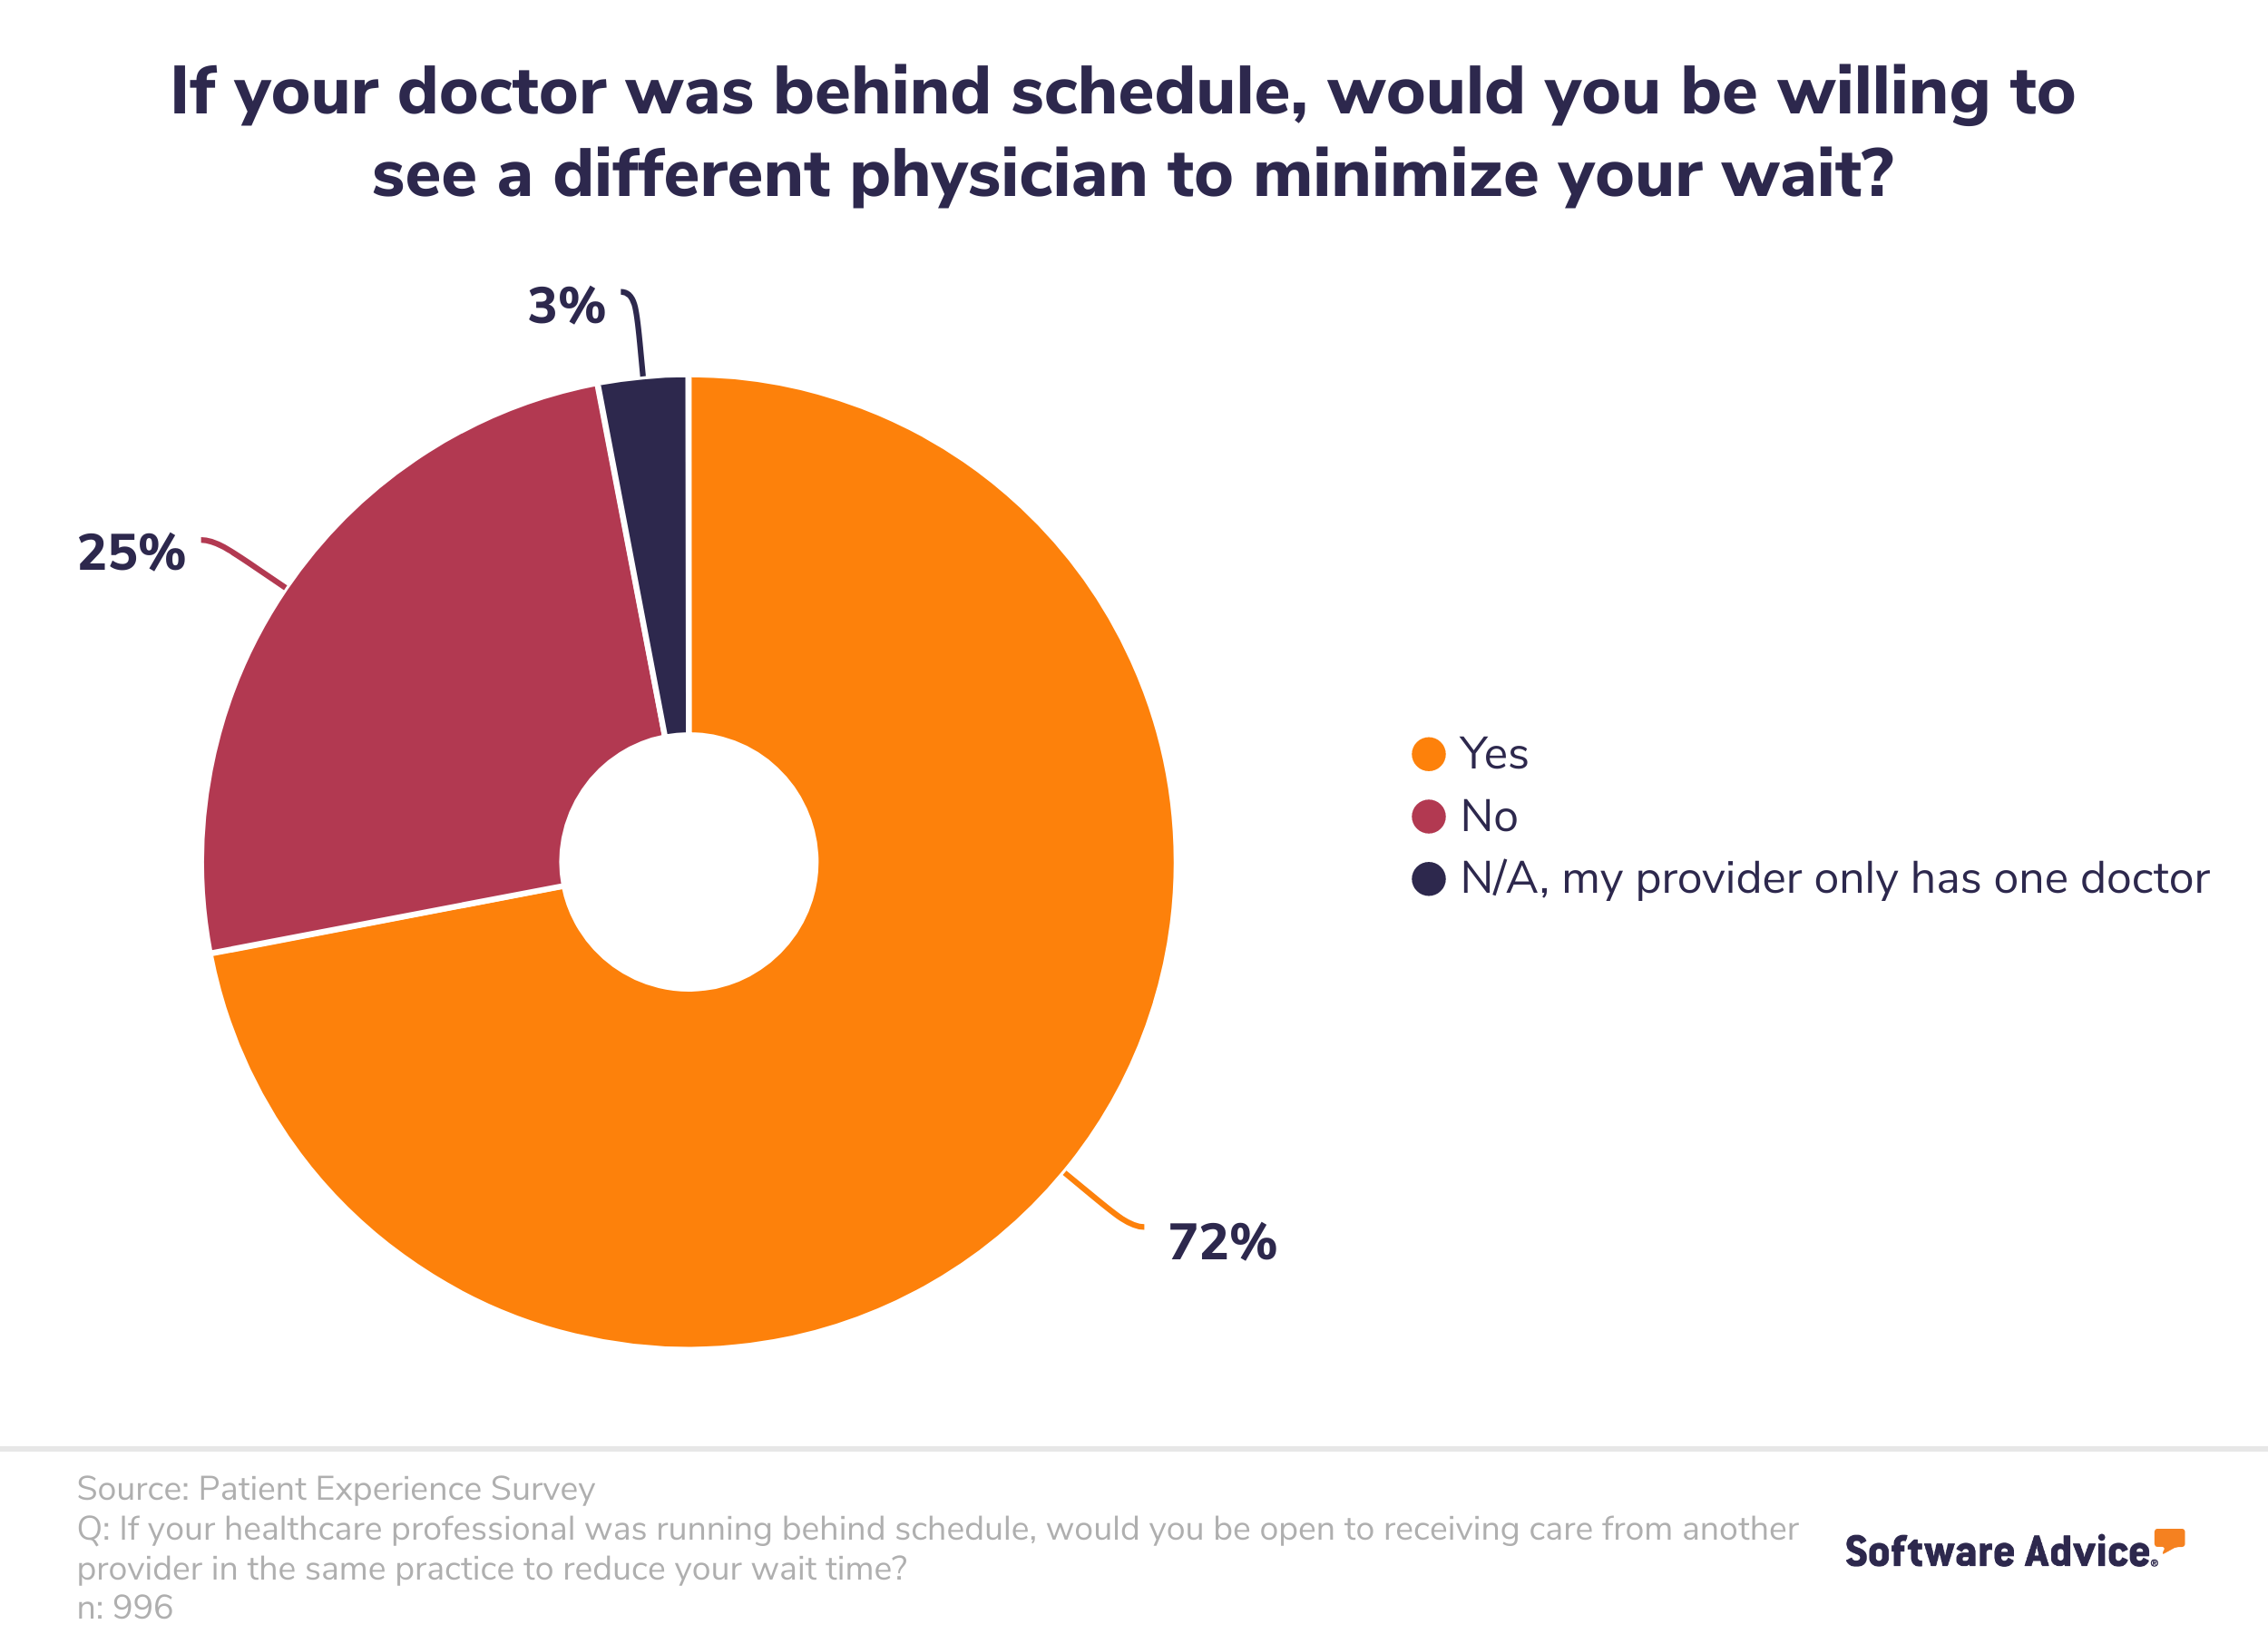 Patient willingness to see another physician to combat long wait time